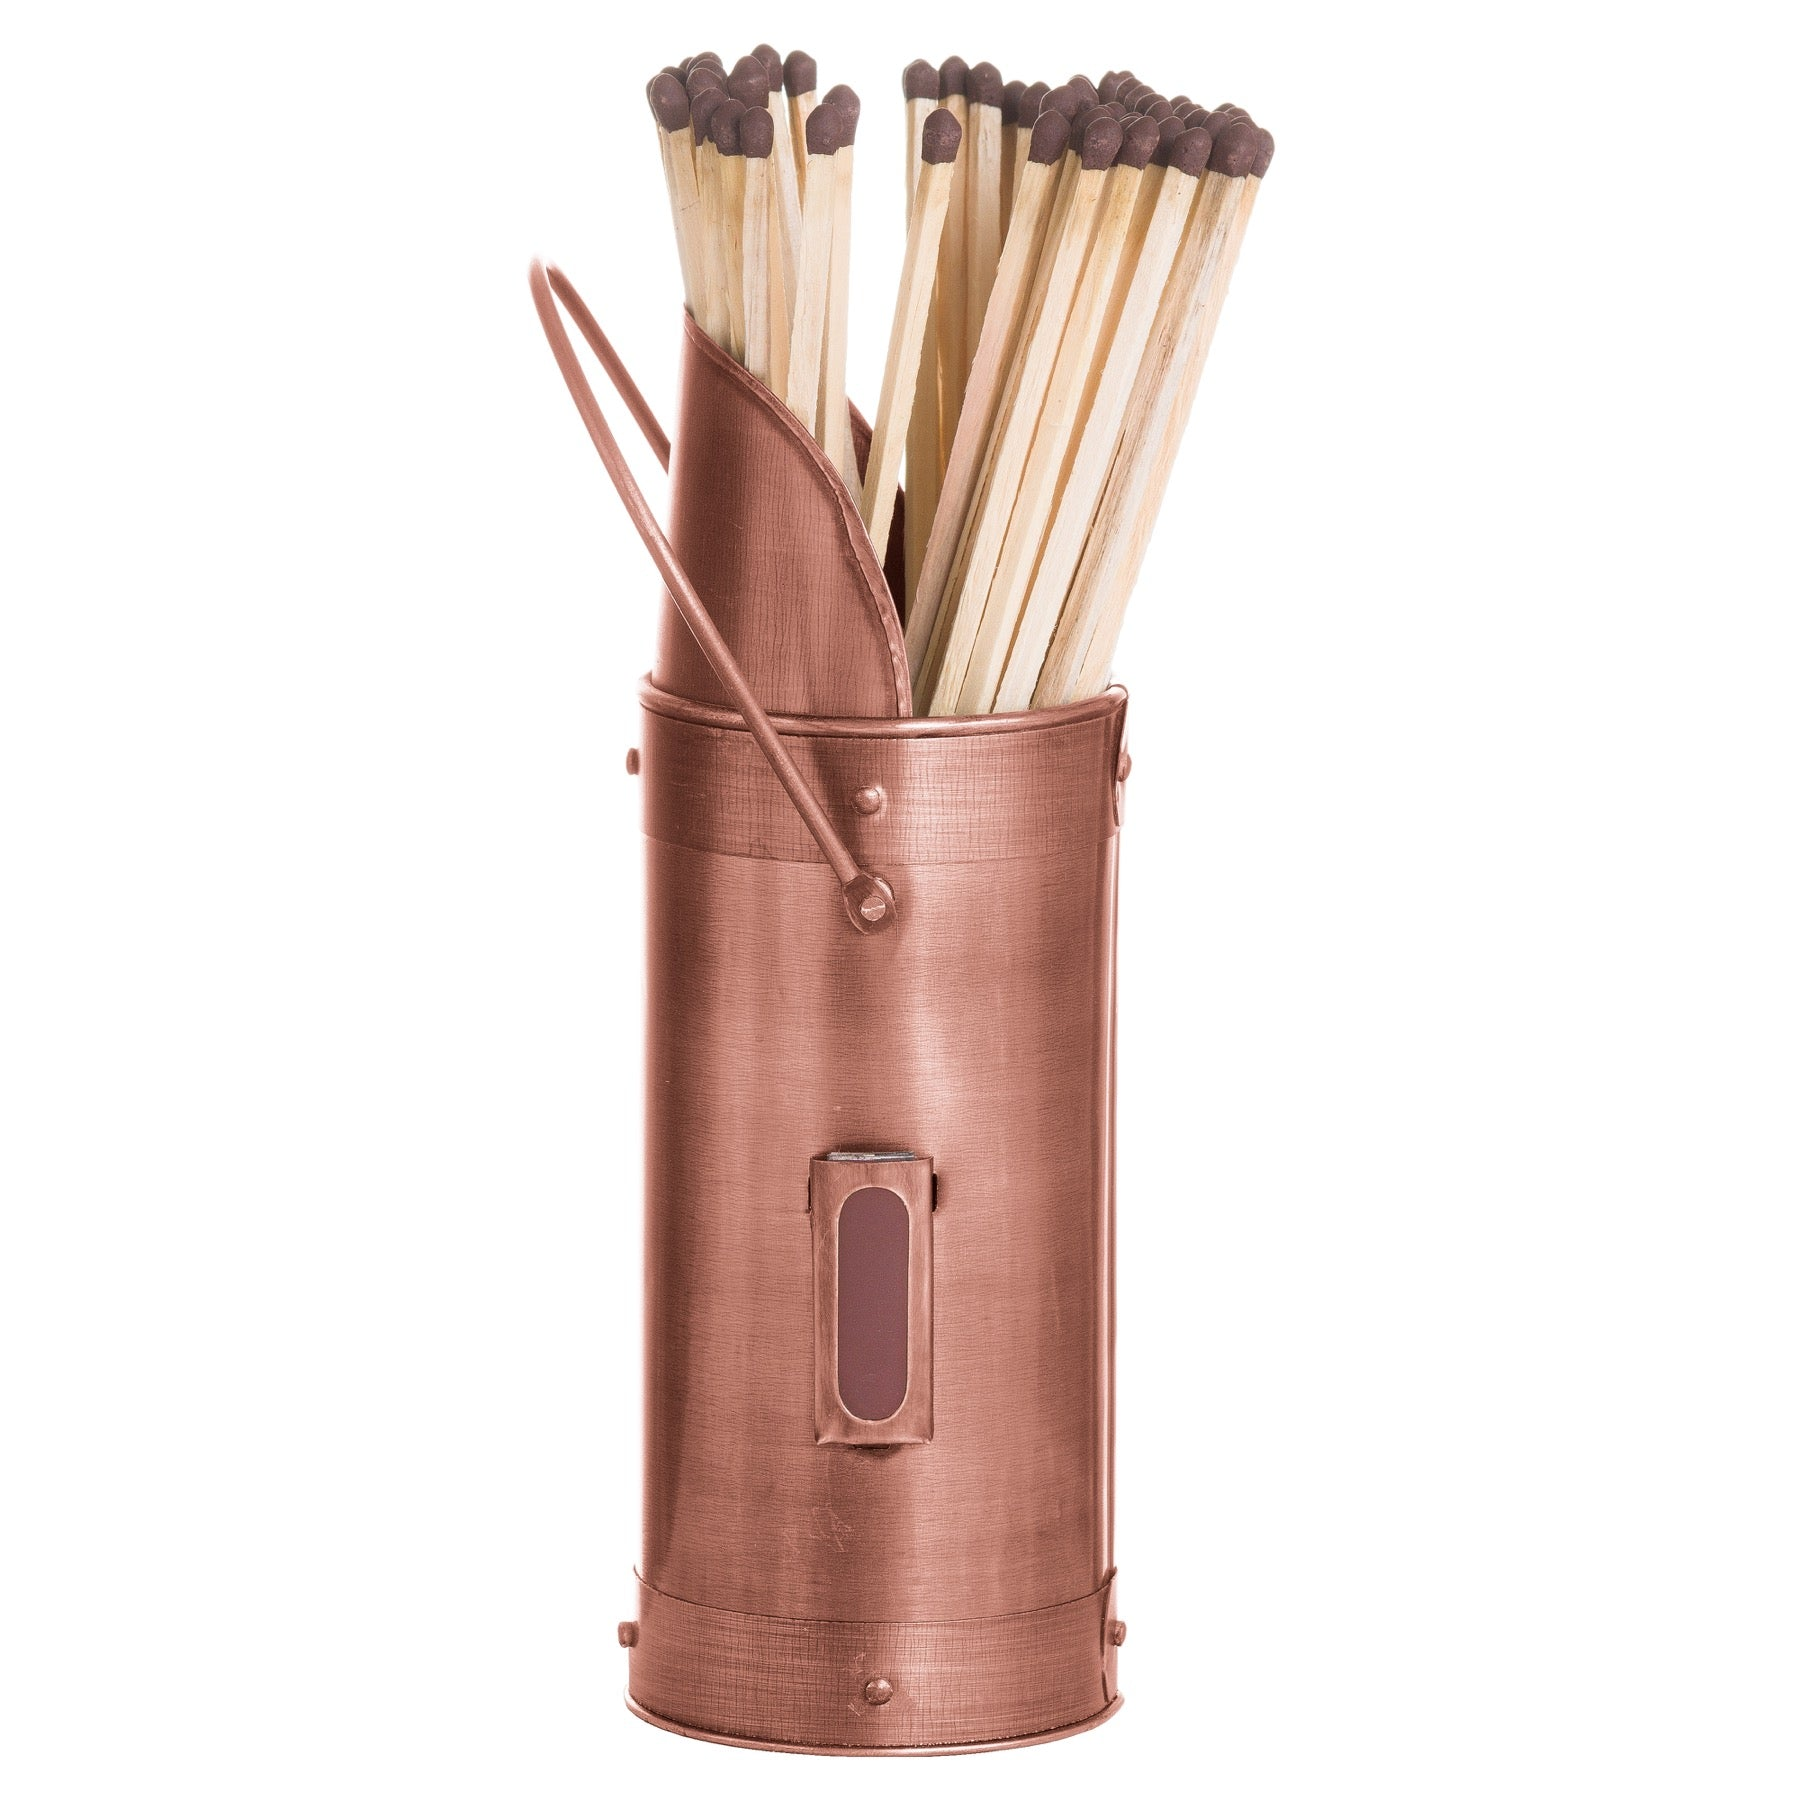 Copper Match Holder With 60 Matches